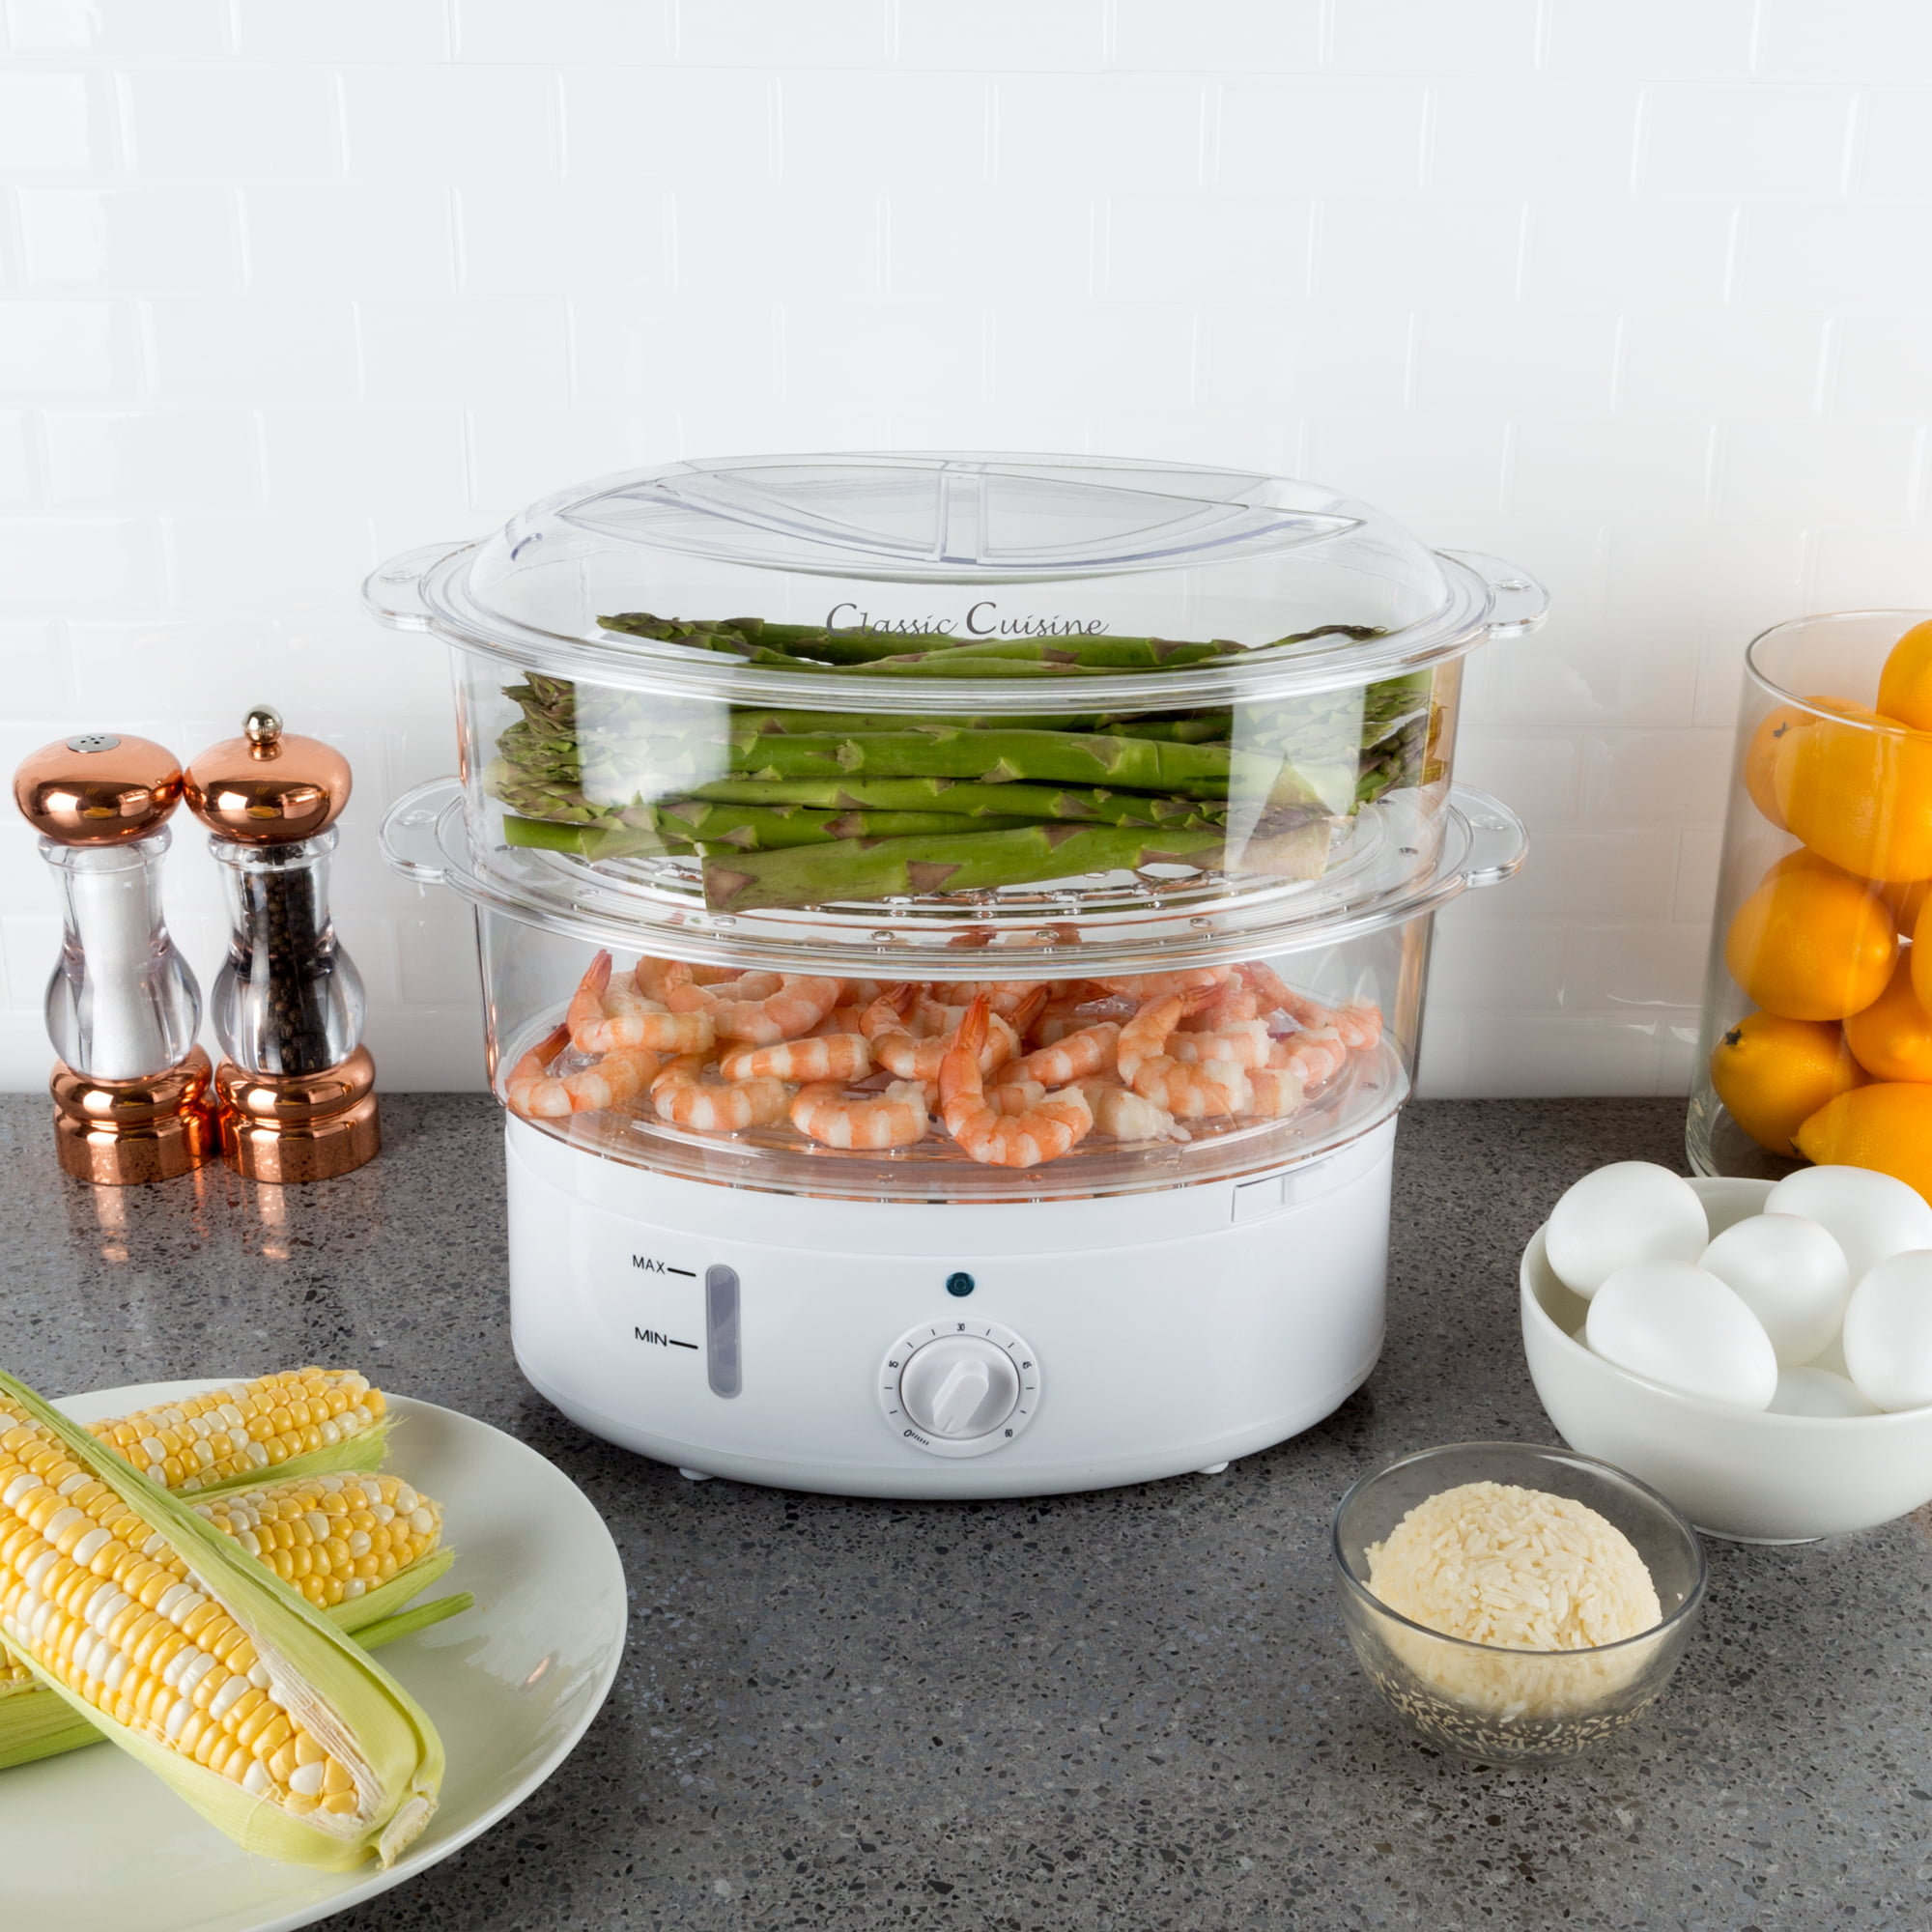 Vegetable Steamer Rice Cooker 63 Quart Electric Steam Appliance With Timer For Healthy Fish Eggs Vegetables Rice Baby Food By Classic Cuisine